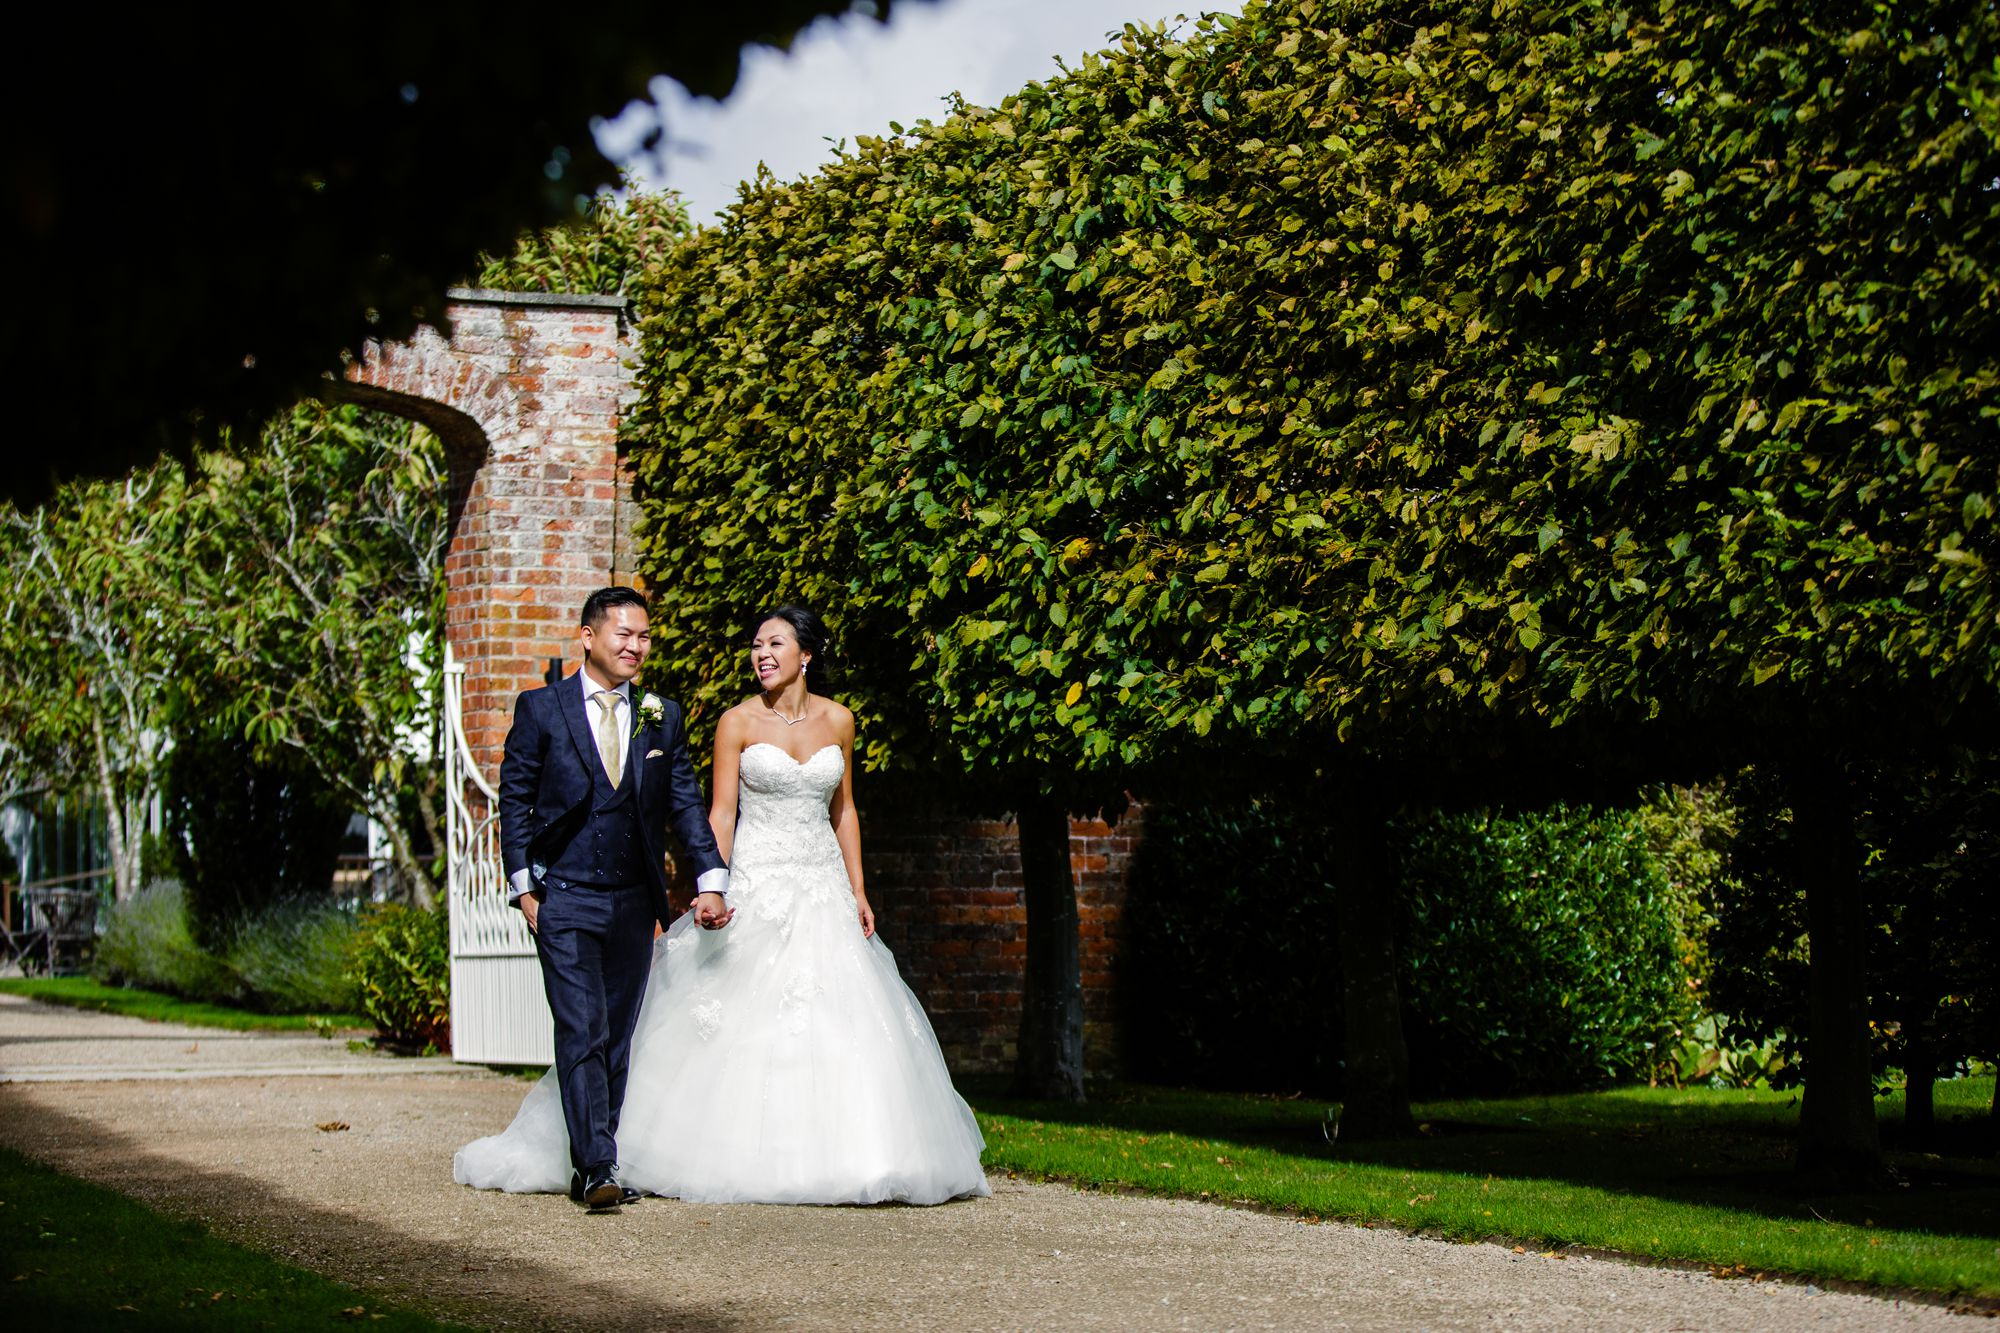 Combermere Abbey Cheshire Wedding Photographer-158.jpg